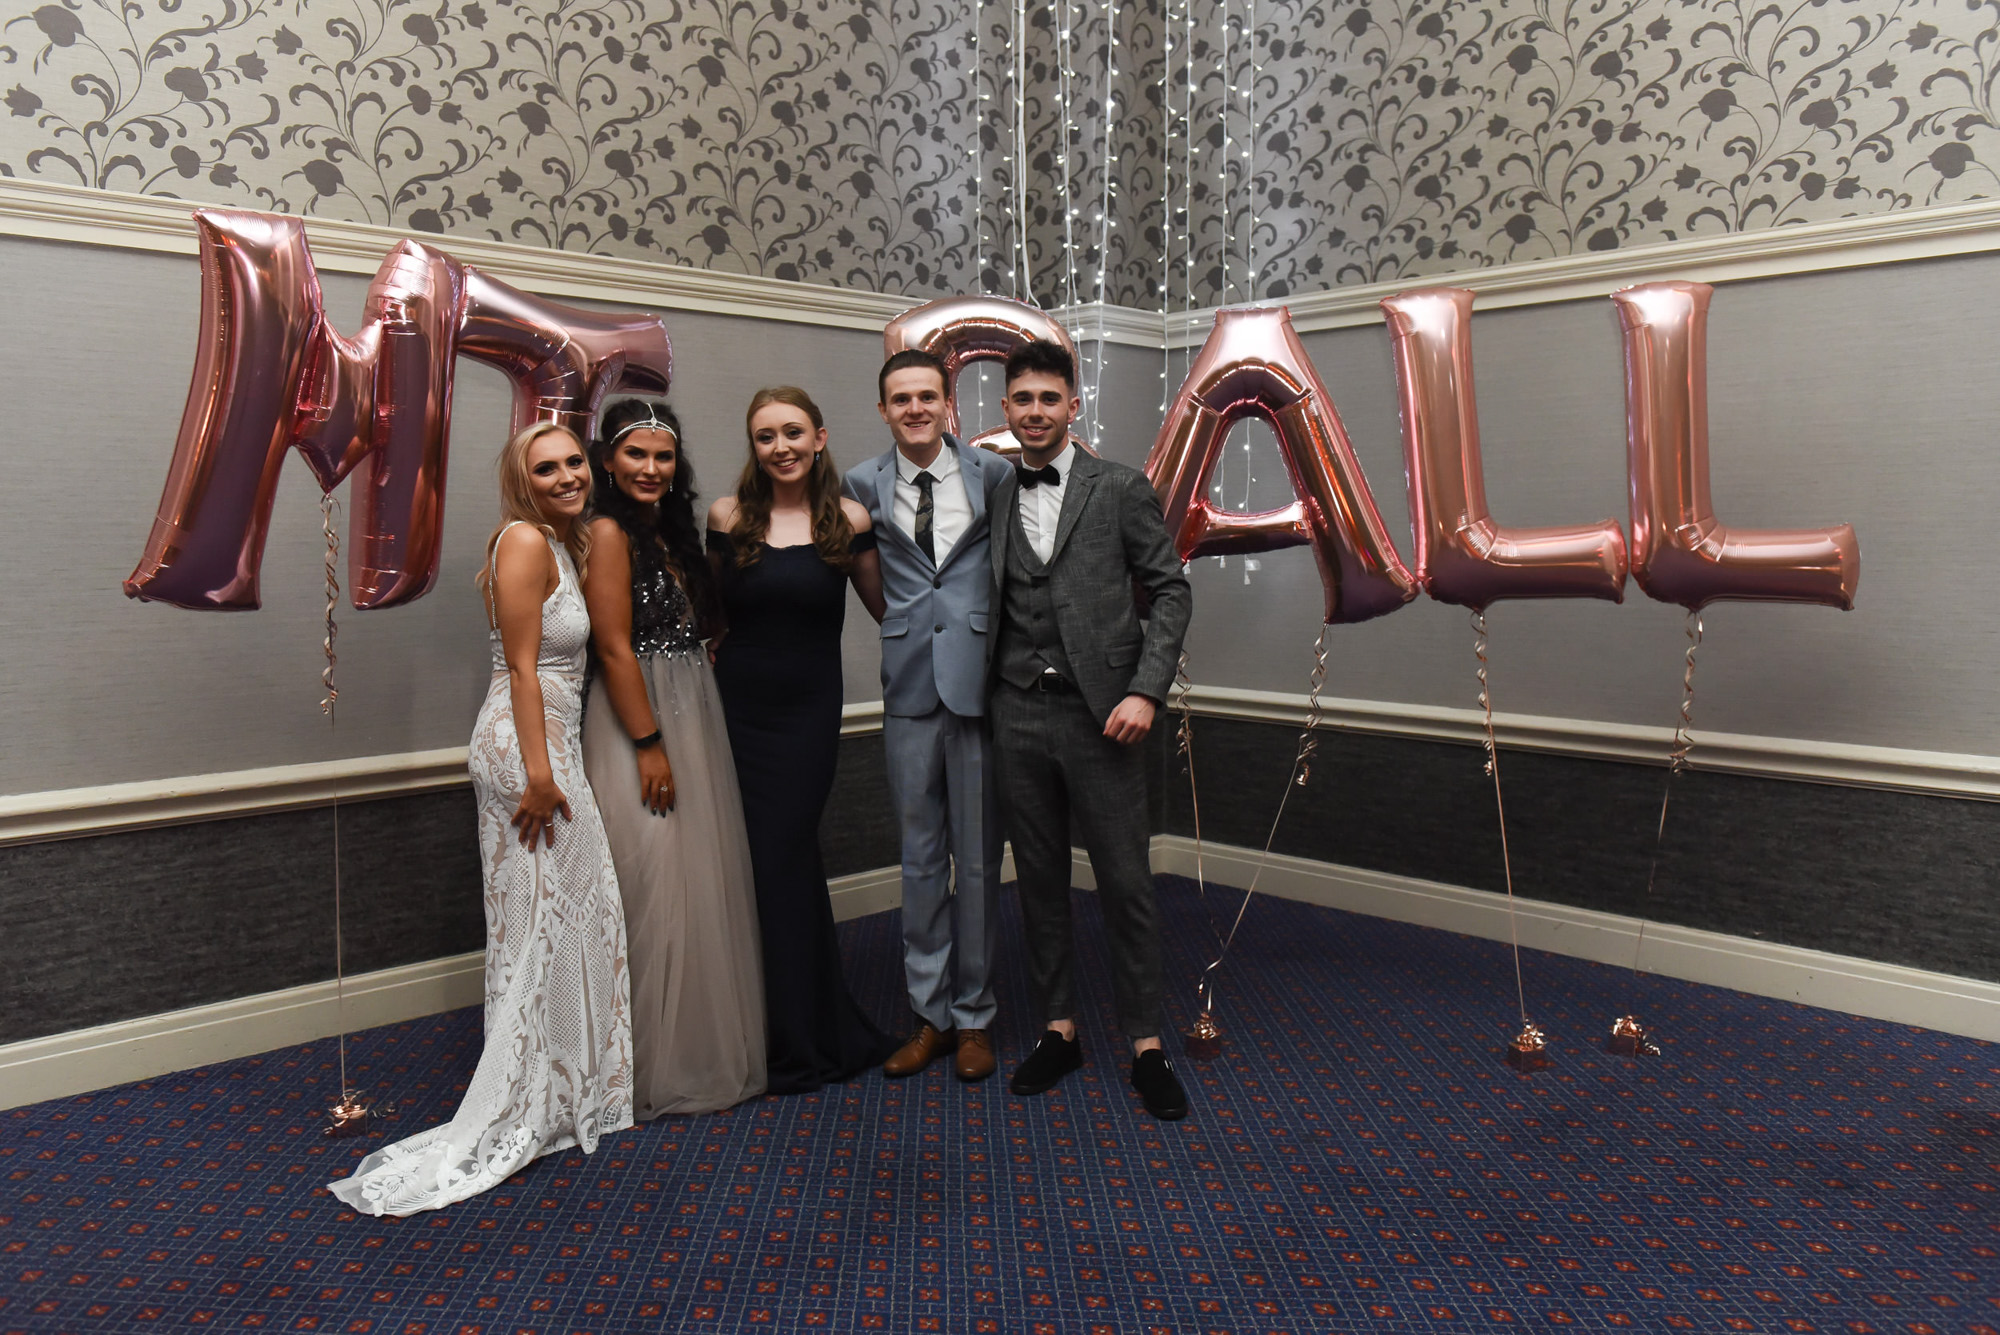 UCLAN_MT_BALL_2019_319.jpg